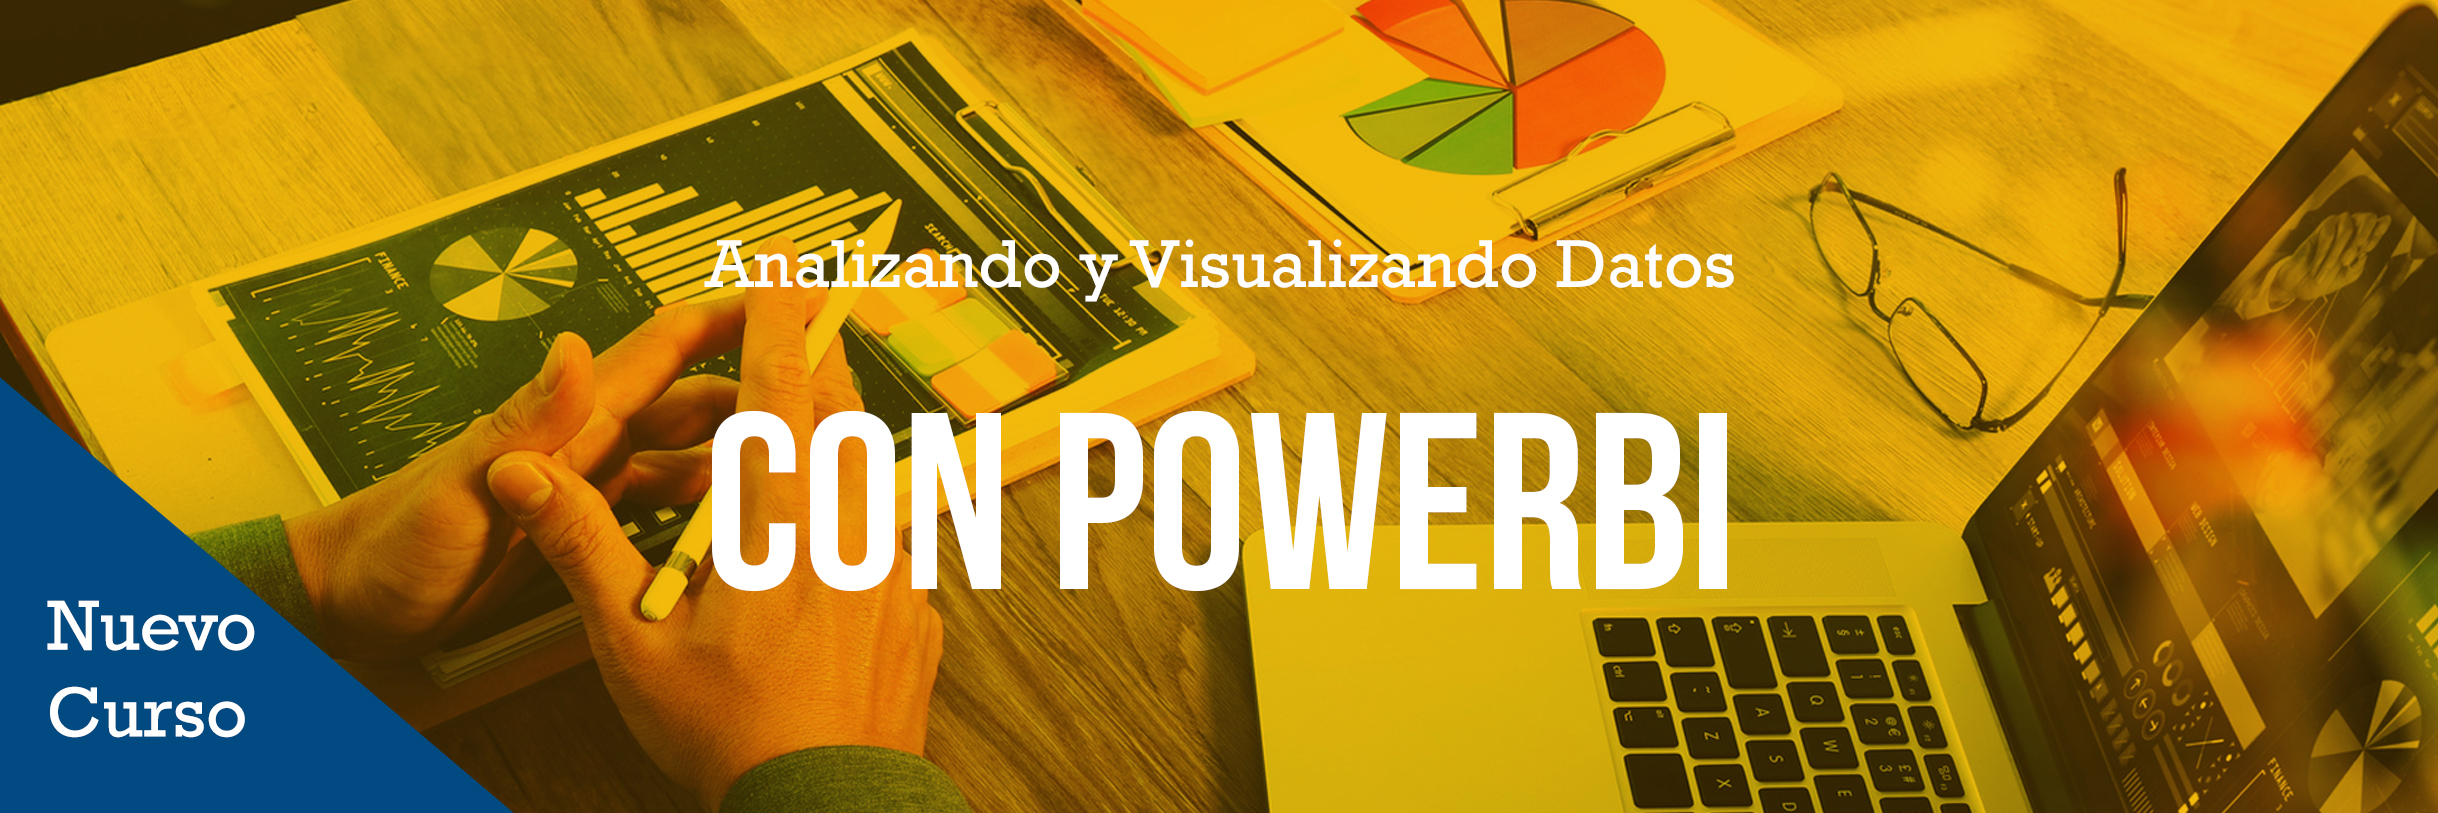 Bh analizando visualizando datos con powerbi